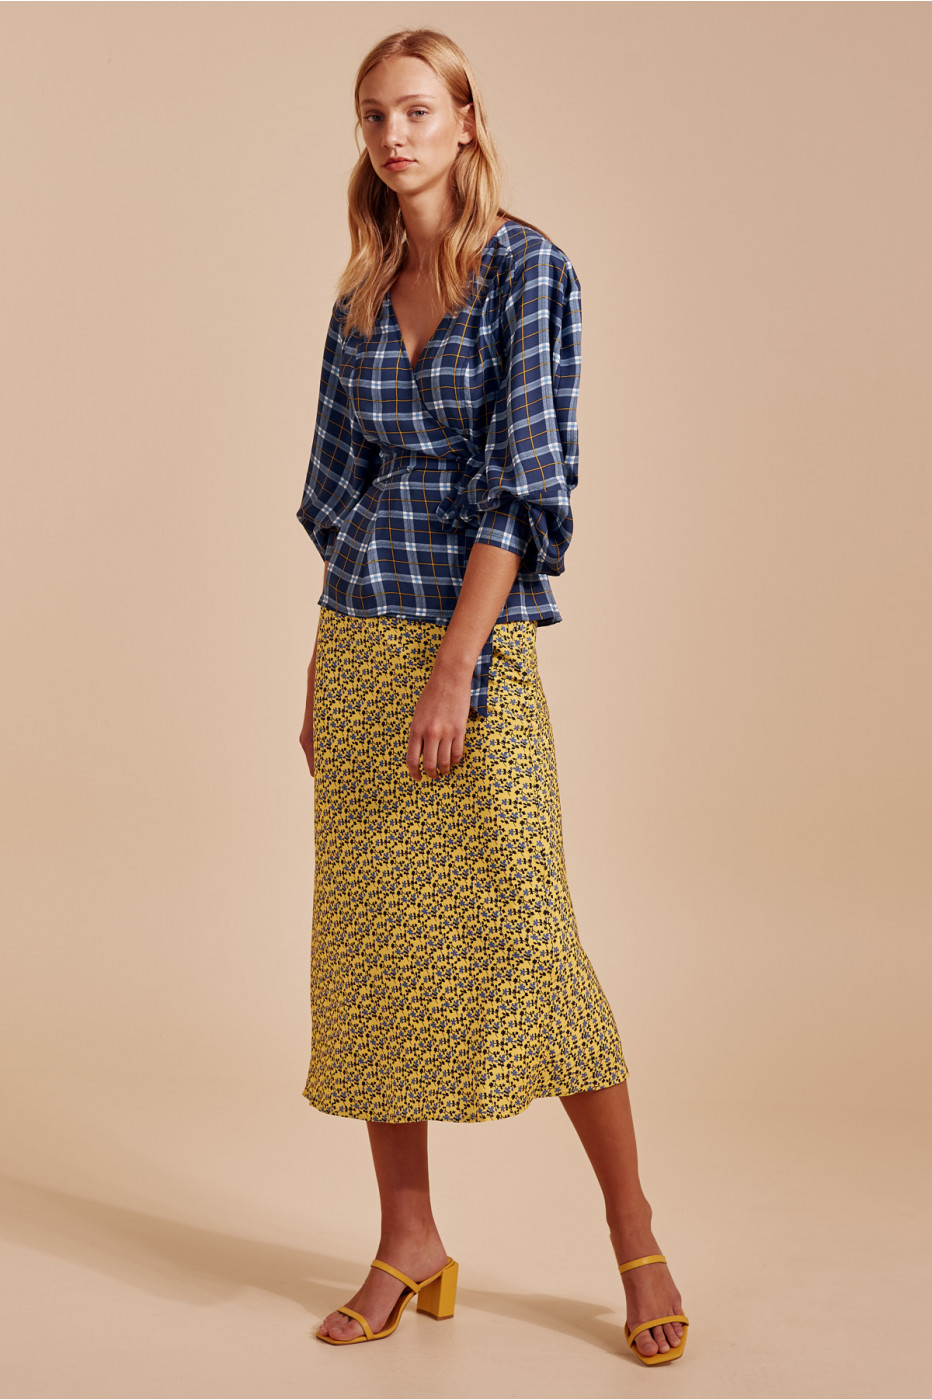 C/meo Collective Define Top In Blue Check